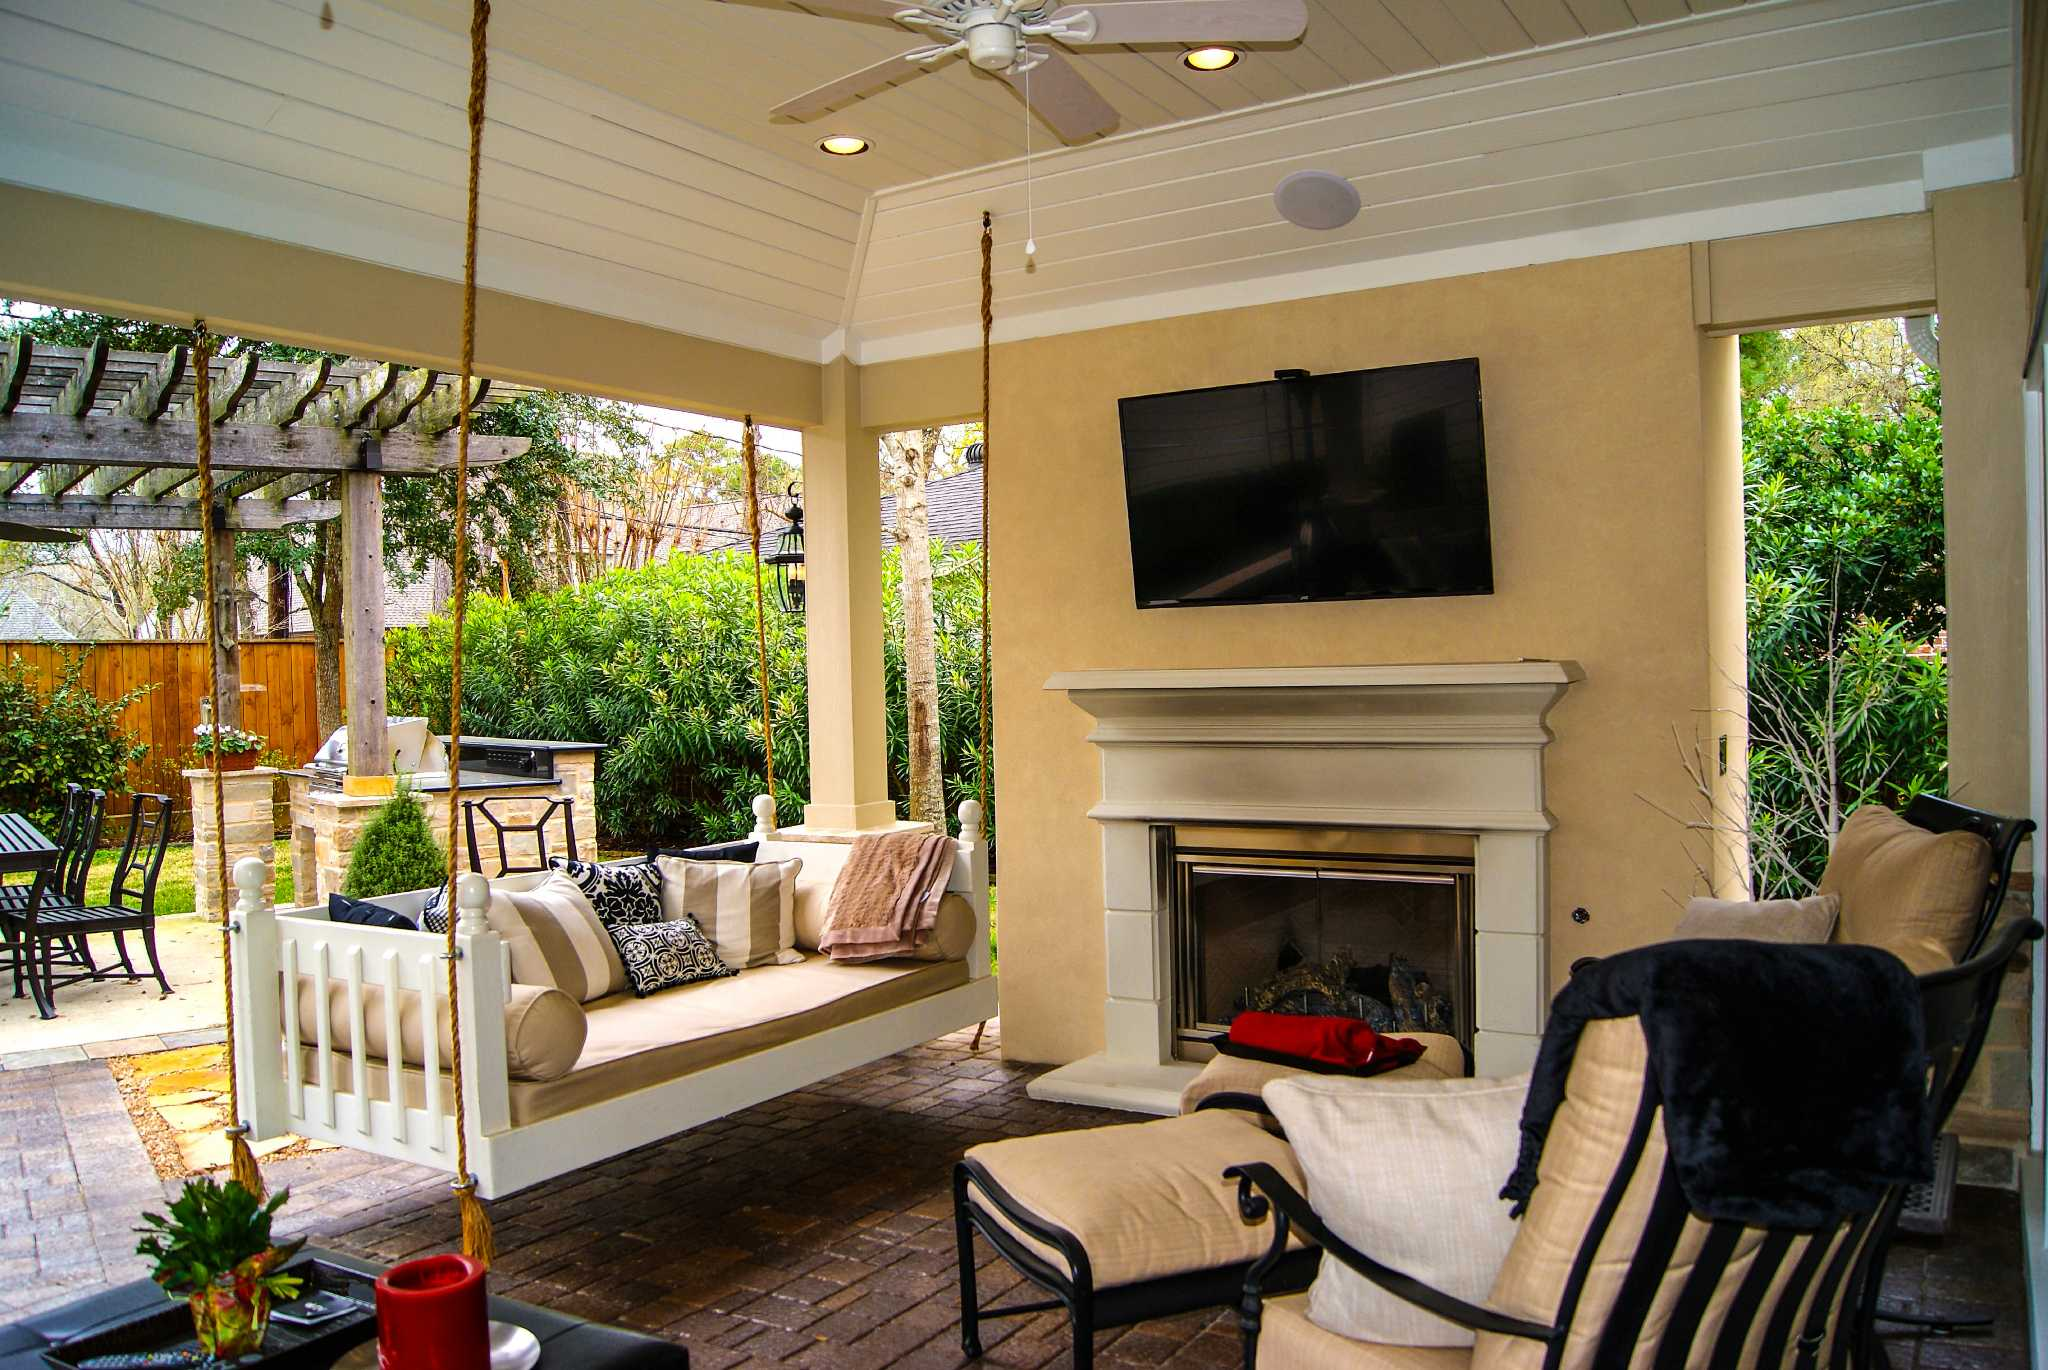 GHBA Remodelers council Create the ideal outdoor living space - Fairfield Citizen